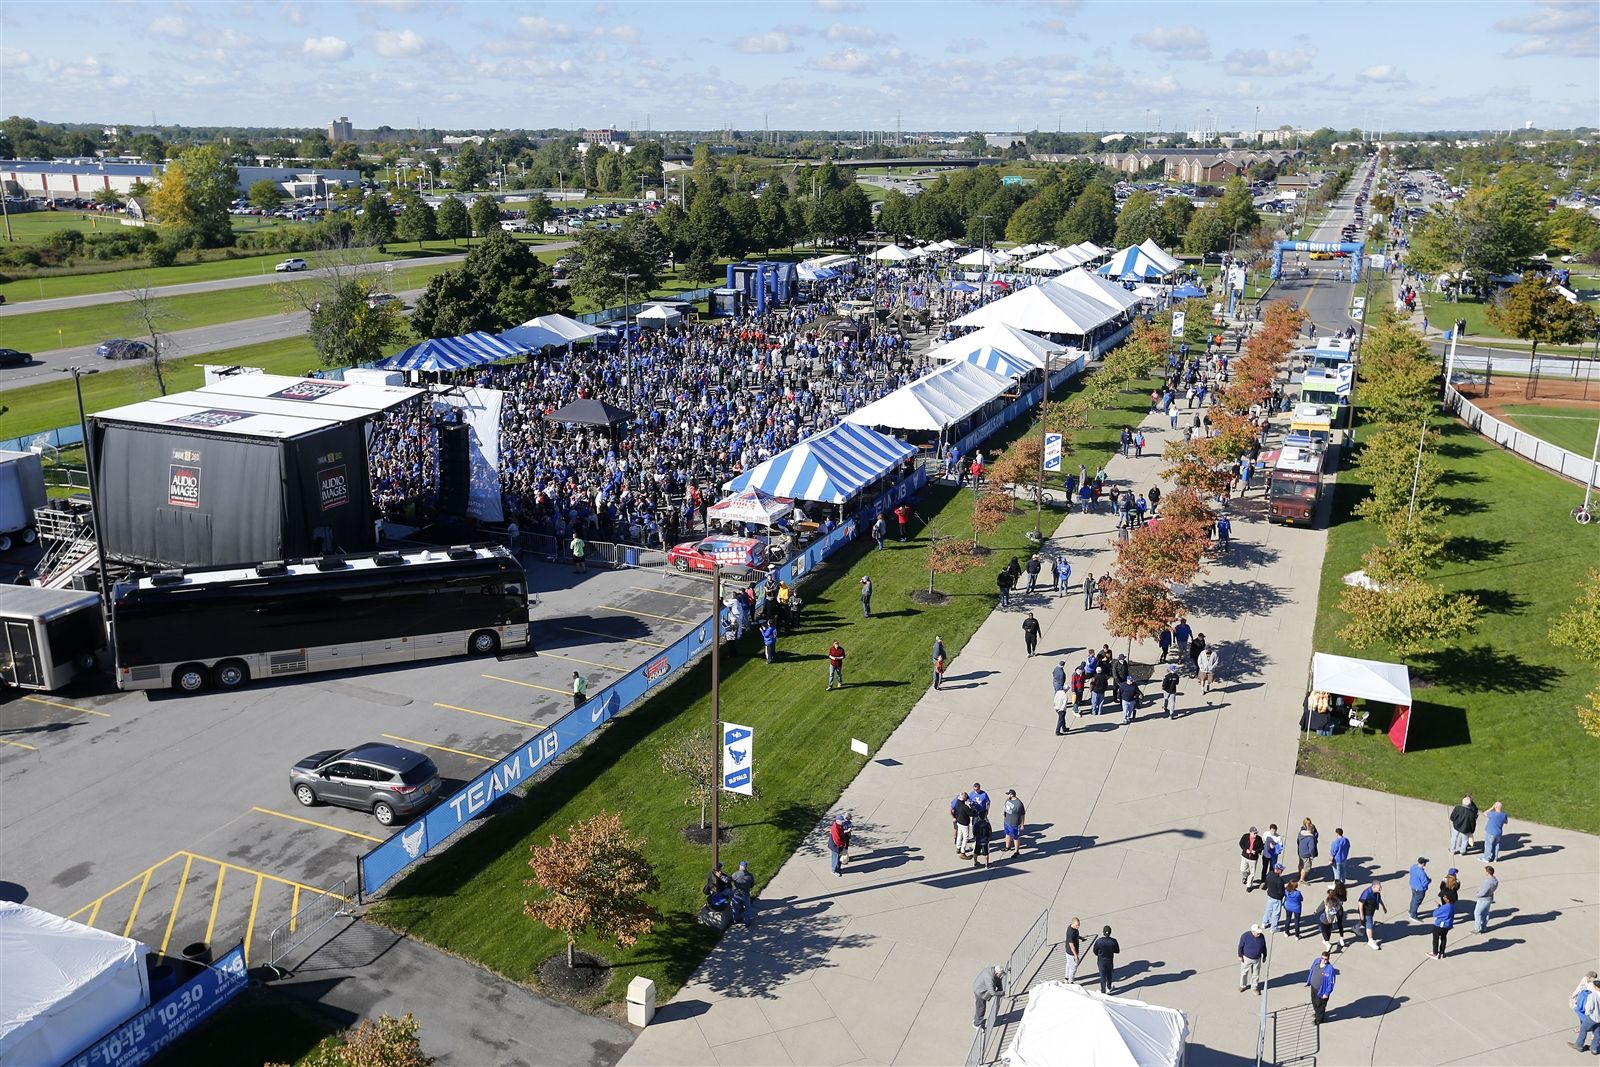 UB fans pack a parking lot for tailgate festivities.